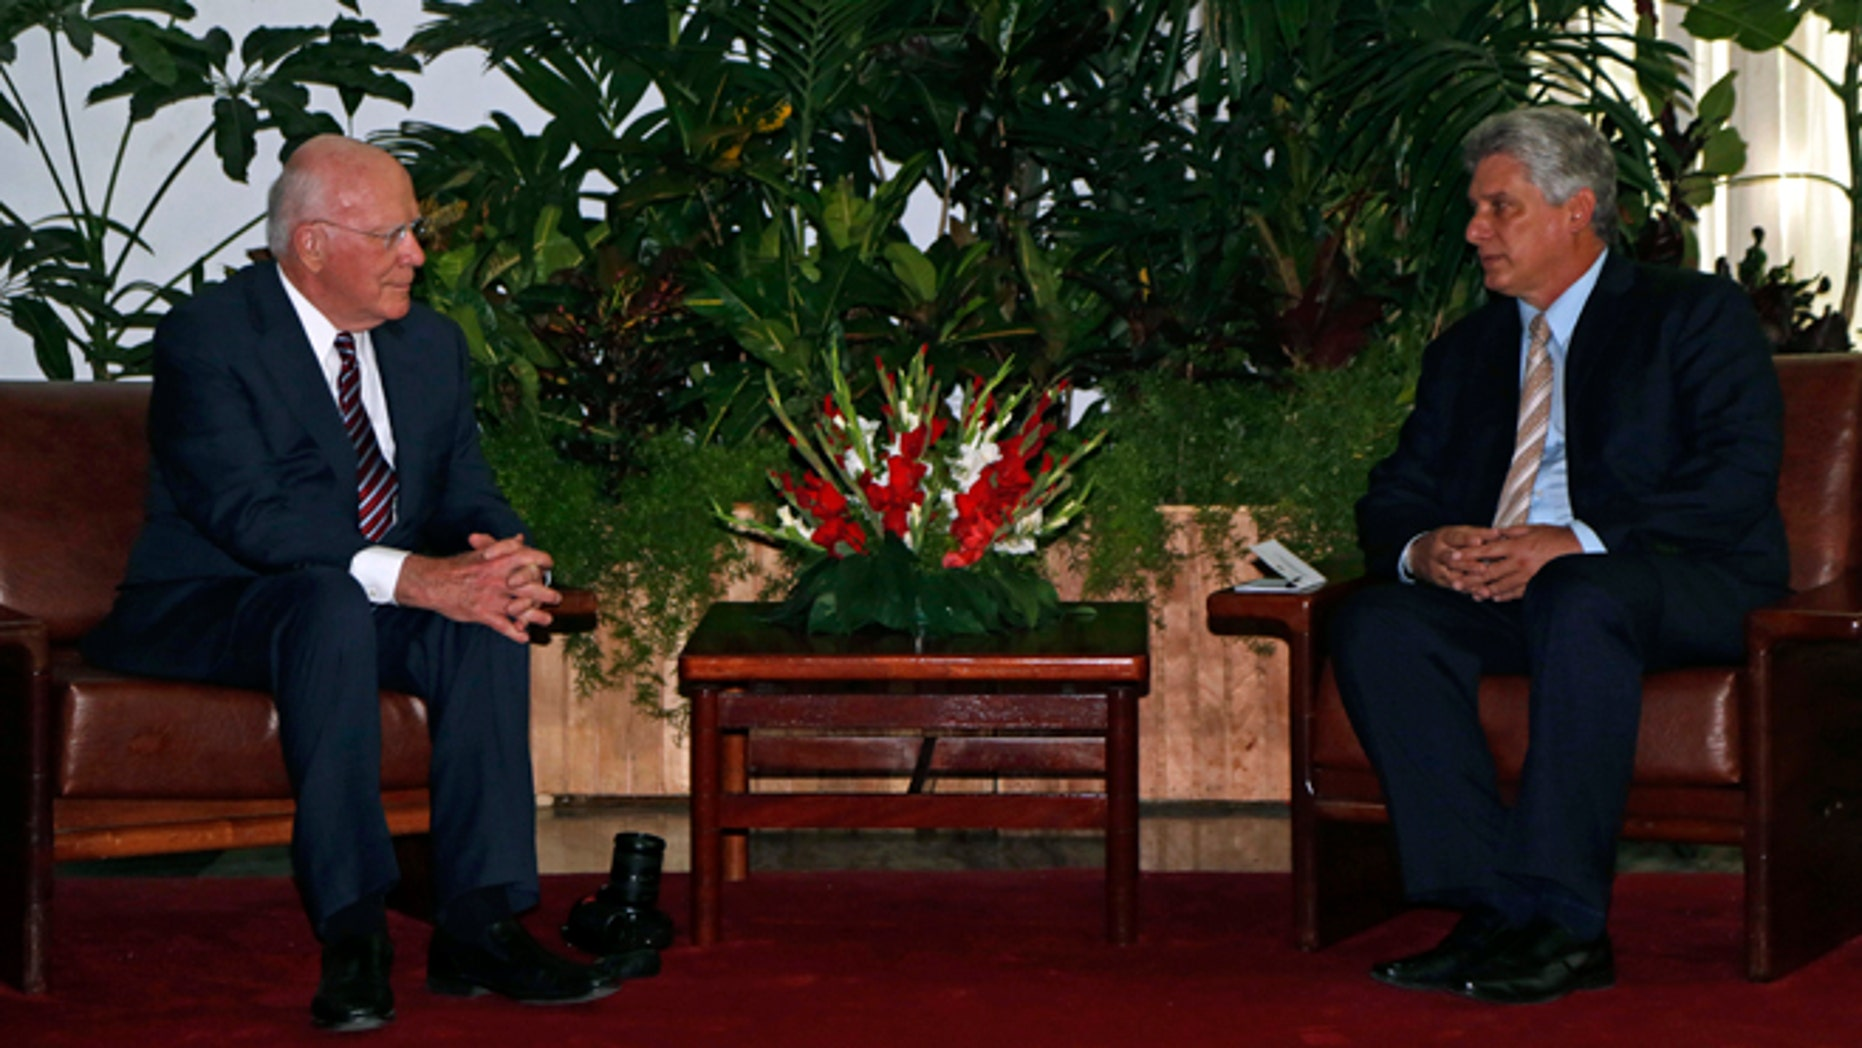 Sen. Patrick Leahy, D-Vt., left, and Cuba's First Vice President Miguel Diaz-Canel Bermudez, sit for a meeting at the Palace of The Revolution in Havana, Cuba, Friday, June 26, 2015. (AP Photo/Desmond Boylan, Pool)